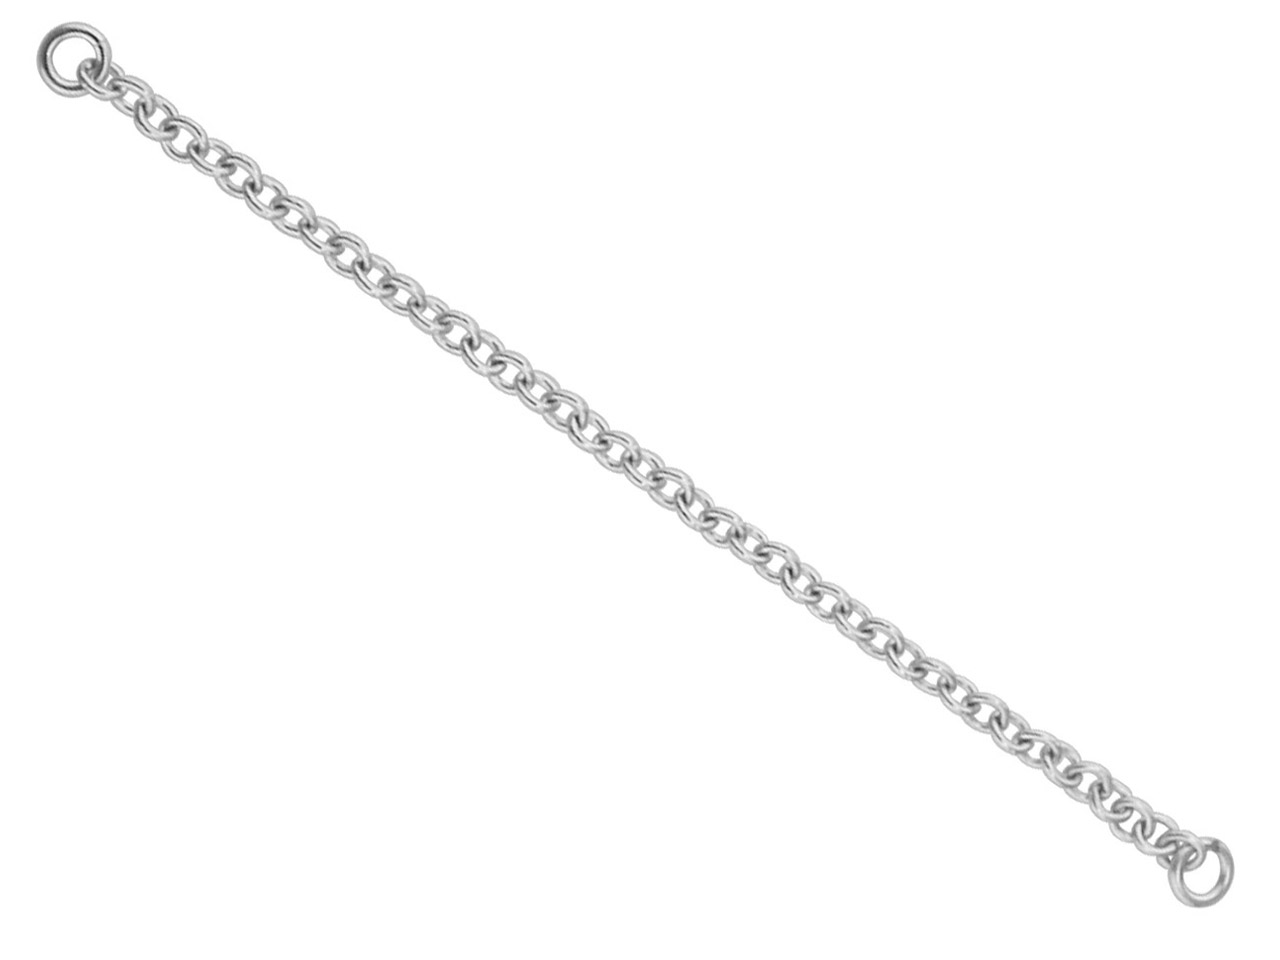 9ct White Bracelet Safety Chain    12/18